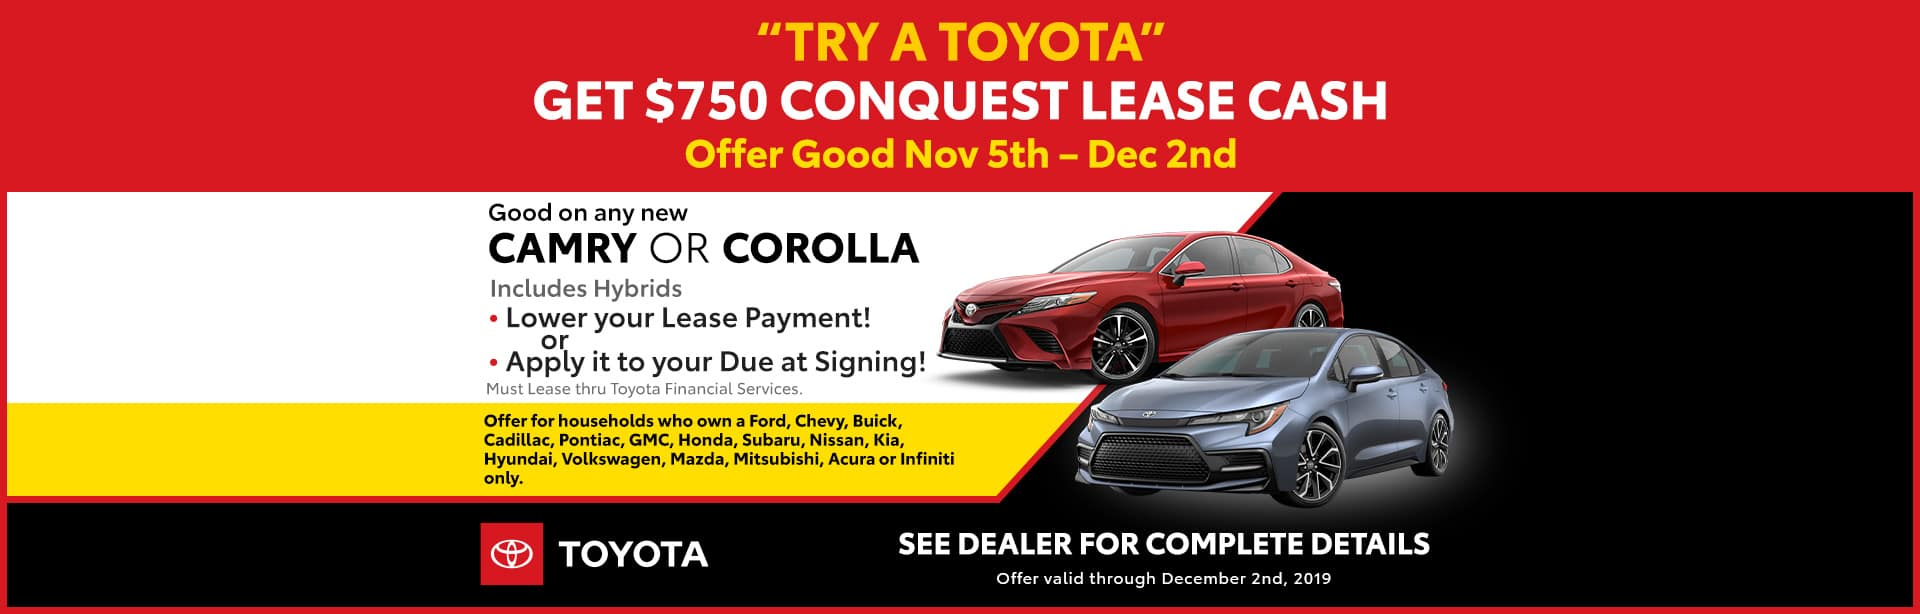 conquest lease banner